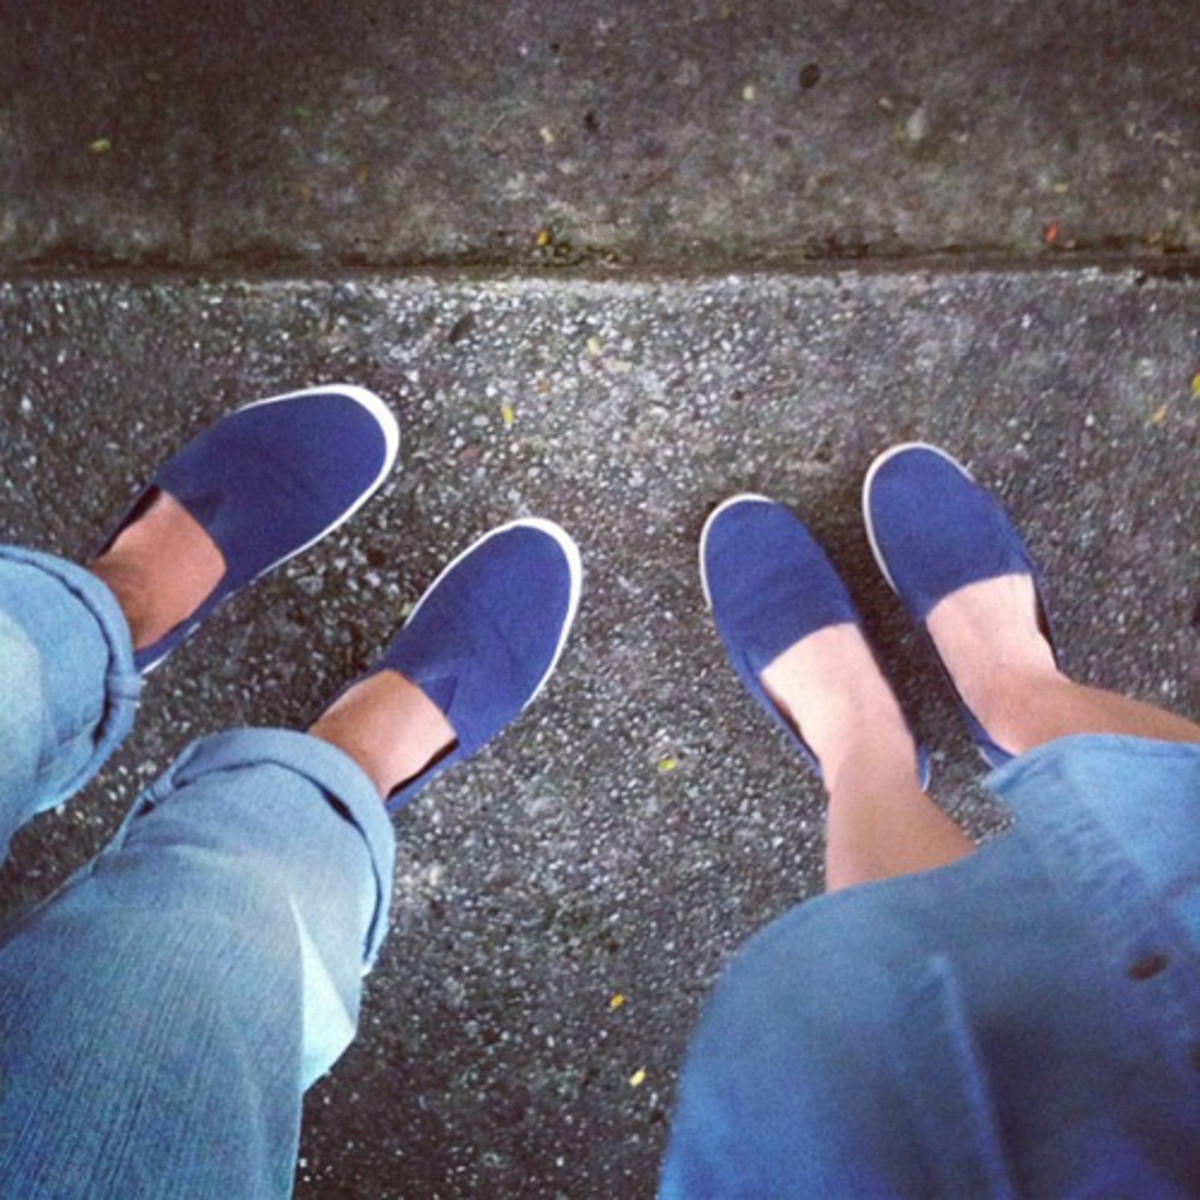 Flats and boat shoes make the nautical trend both cute and comfy.